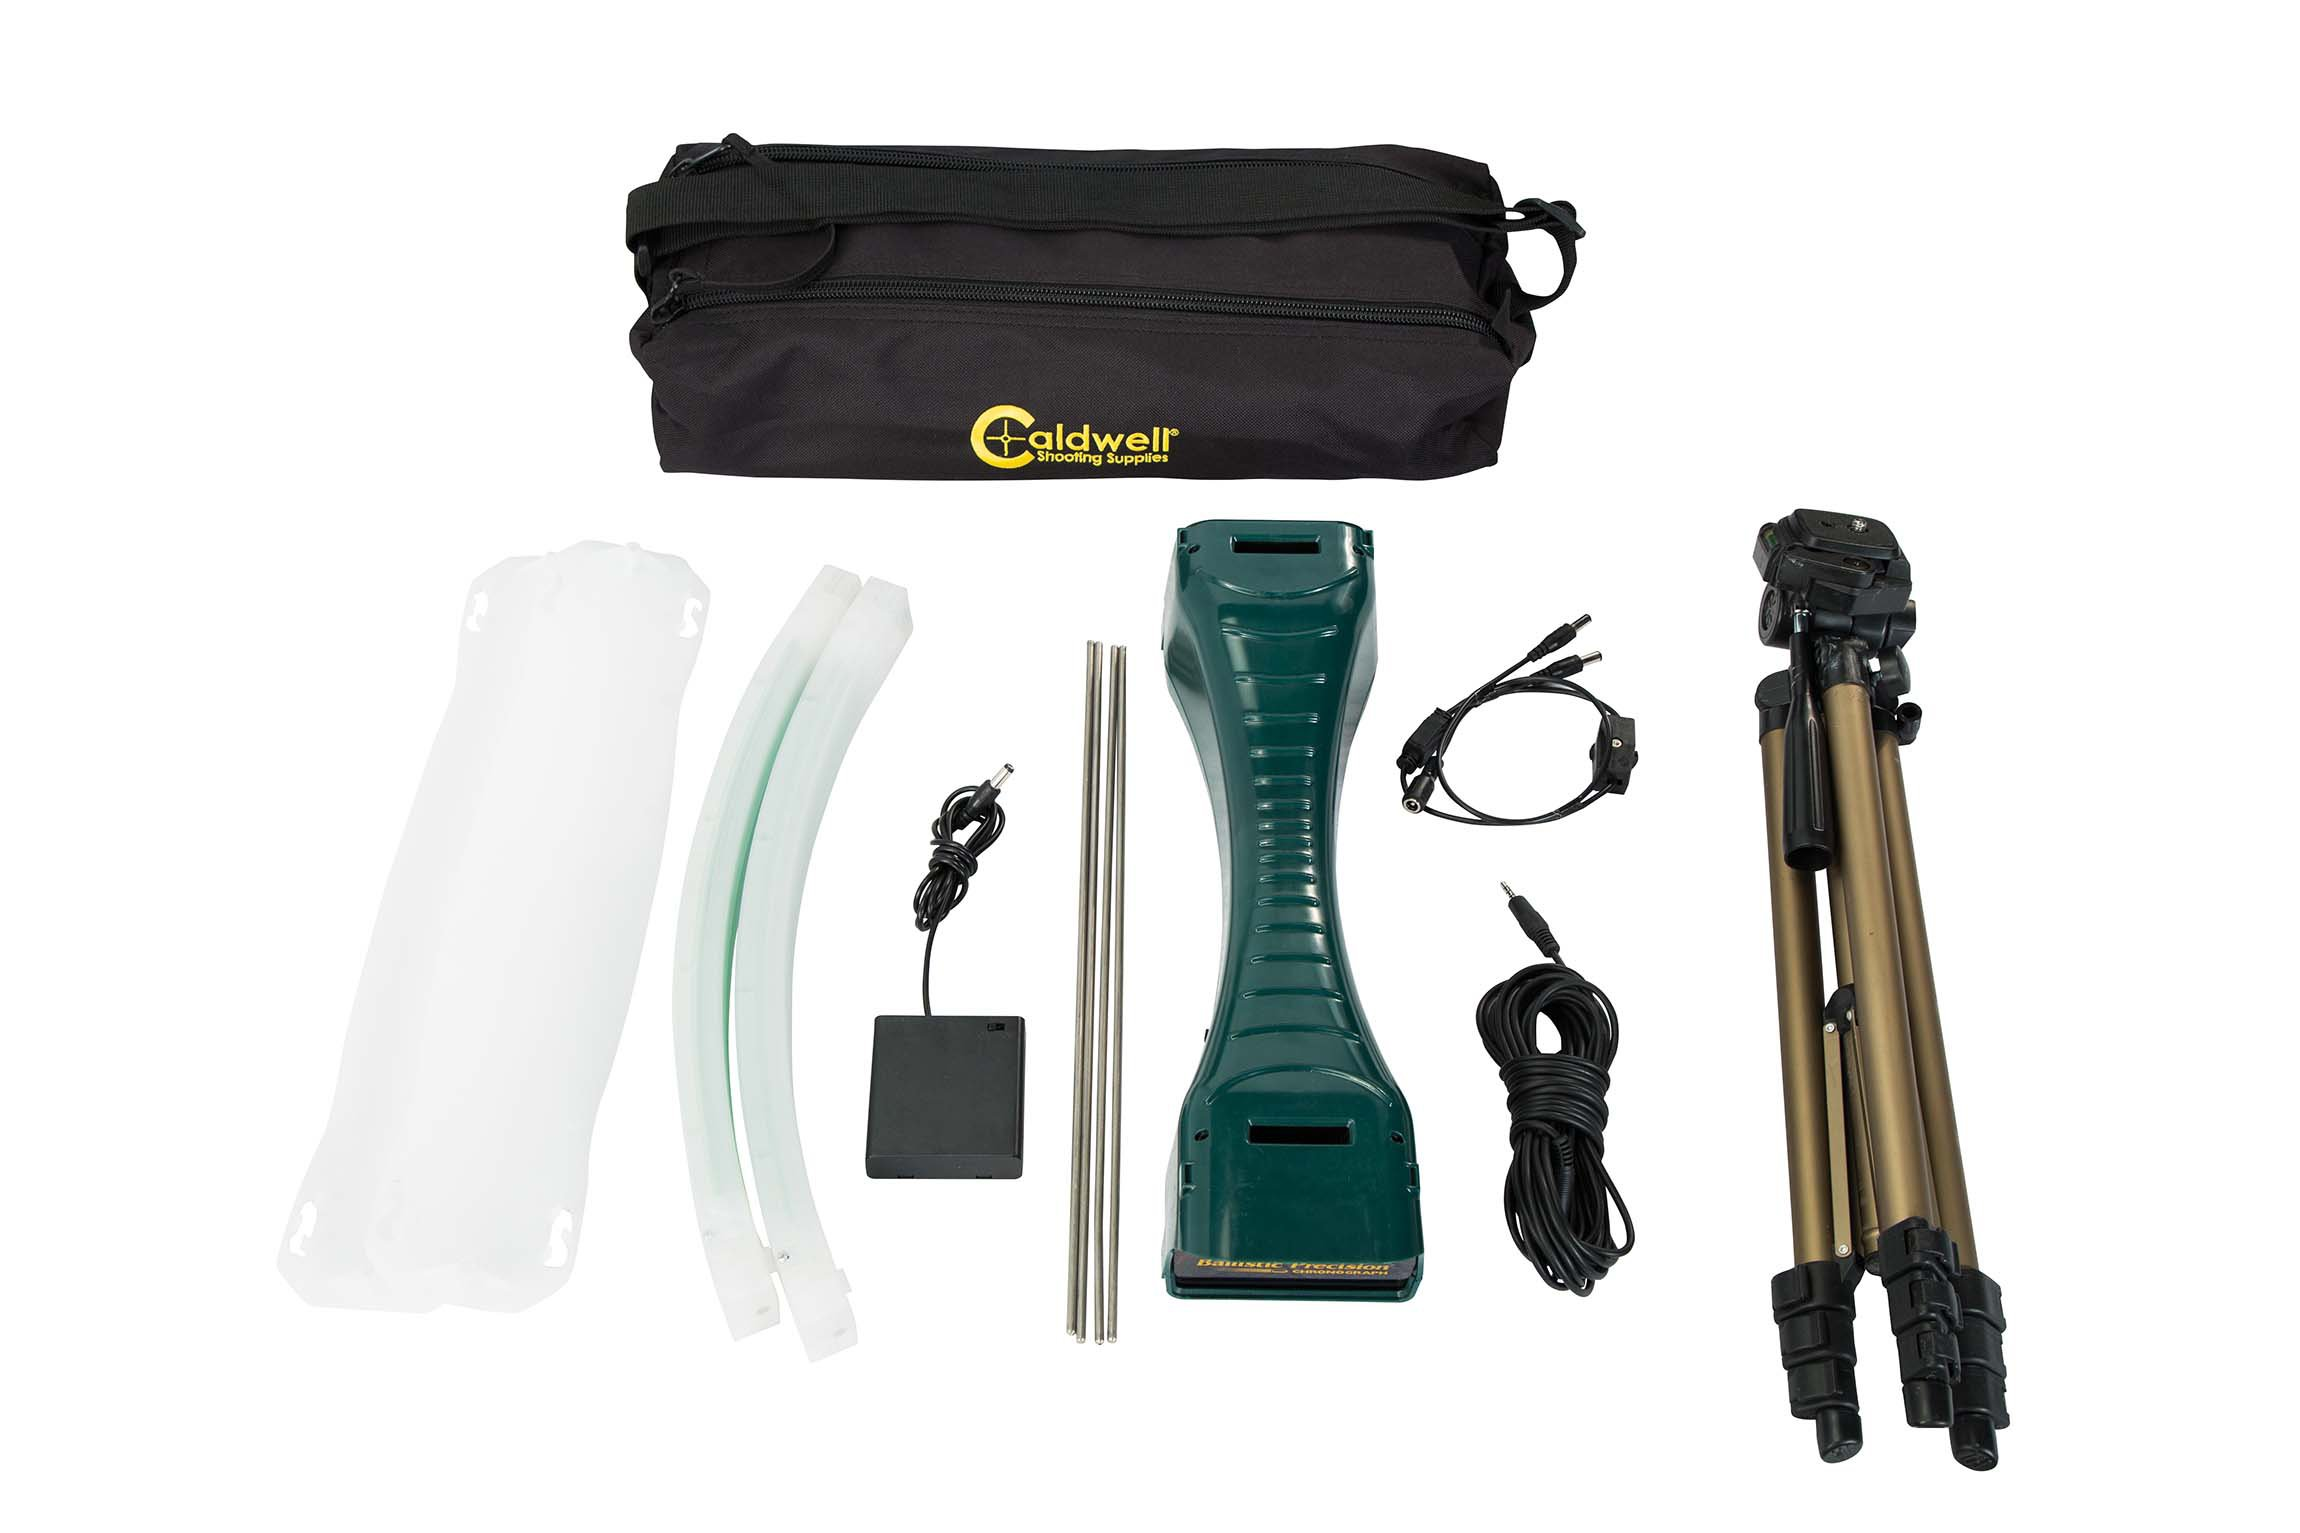 Caldwell Ballistic Precision Chronograph Premium Kit with Tripod for Shooting Indoor and Outdoor MPS/FPS Readings by Caldwell